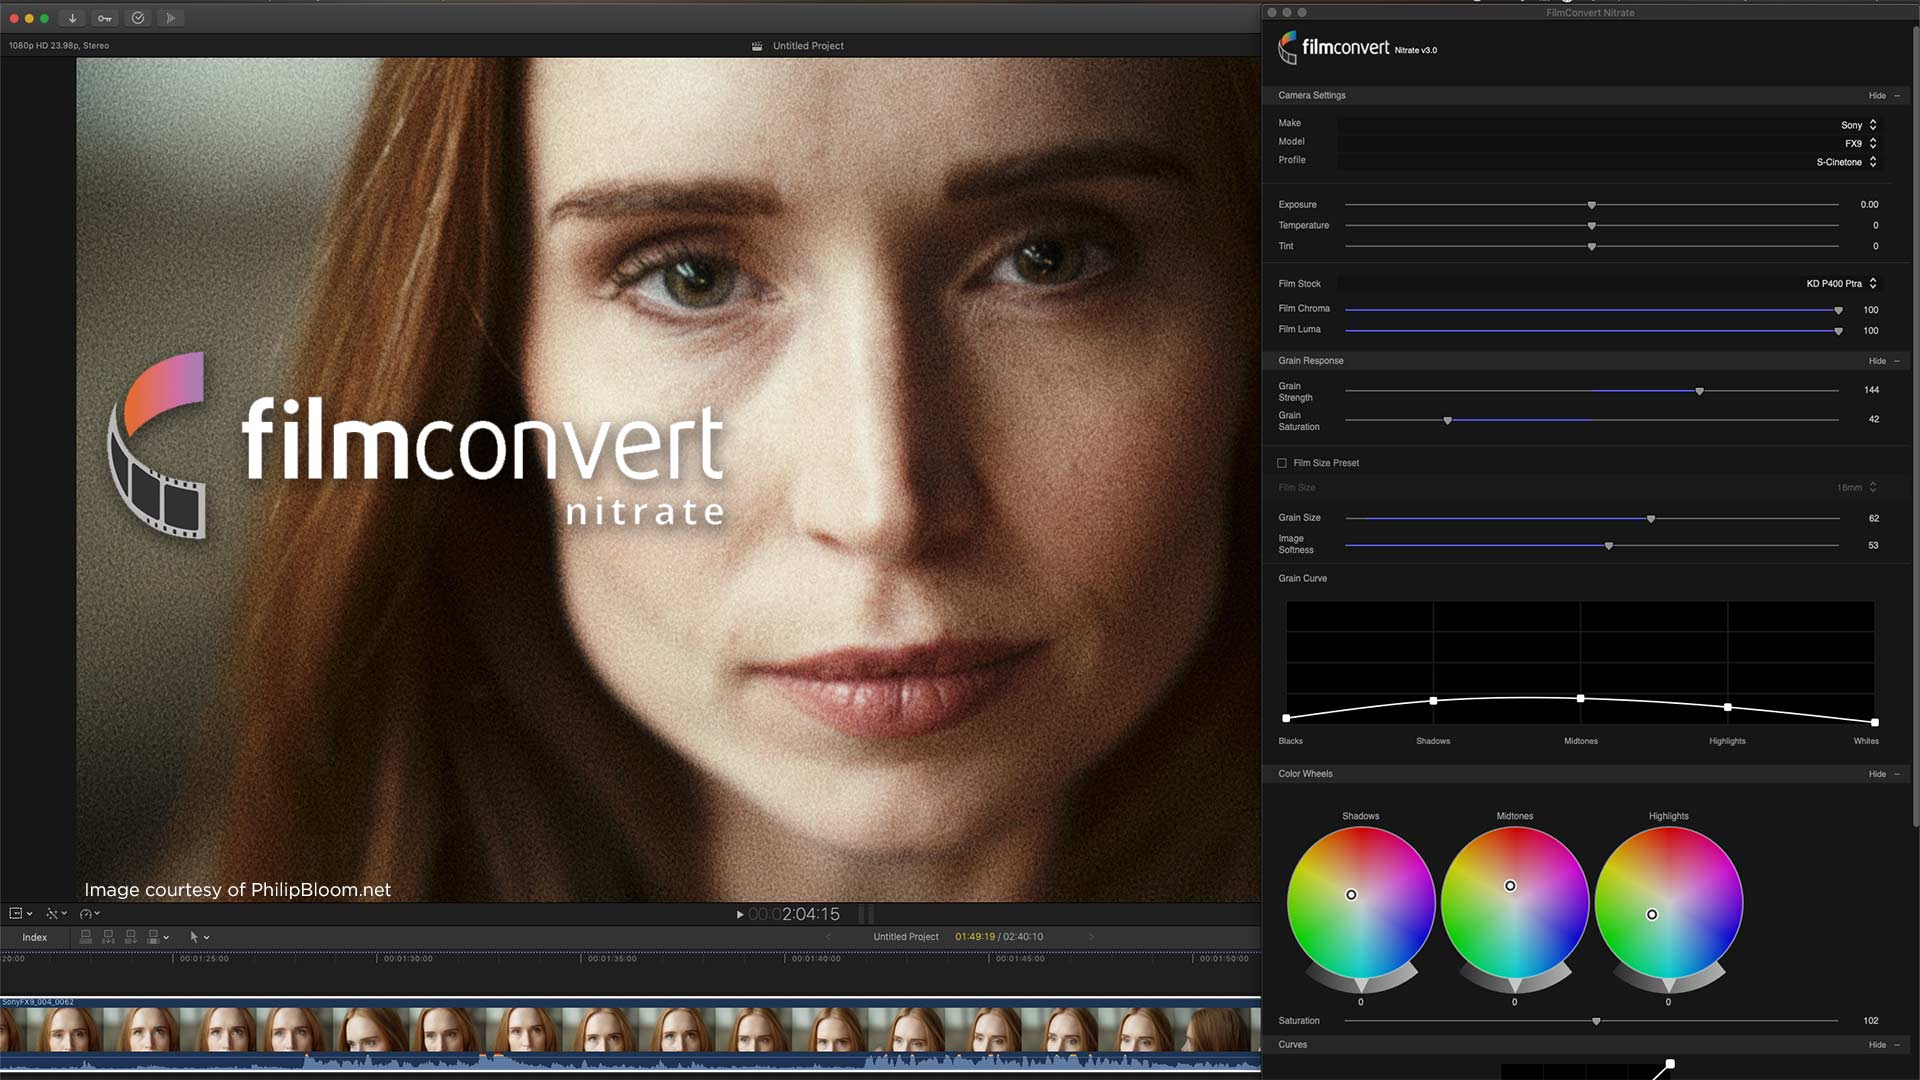 Emulate Film in Final Cut Pro X with FilmConvert's Nitrate